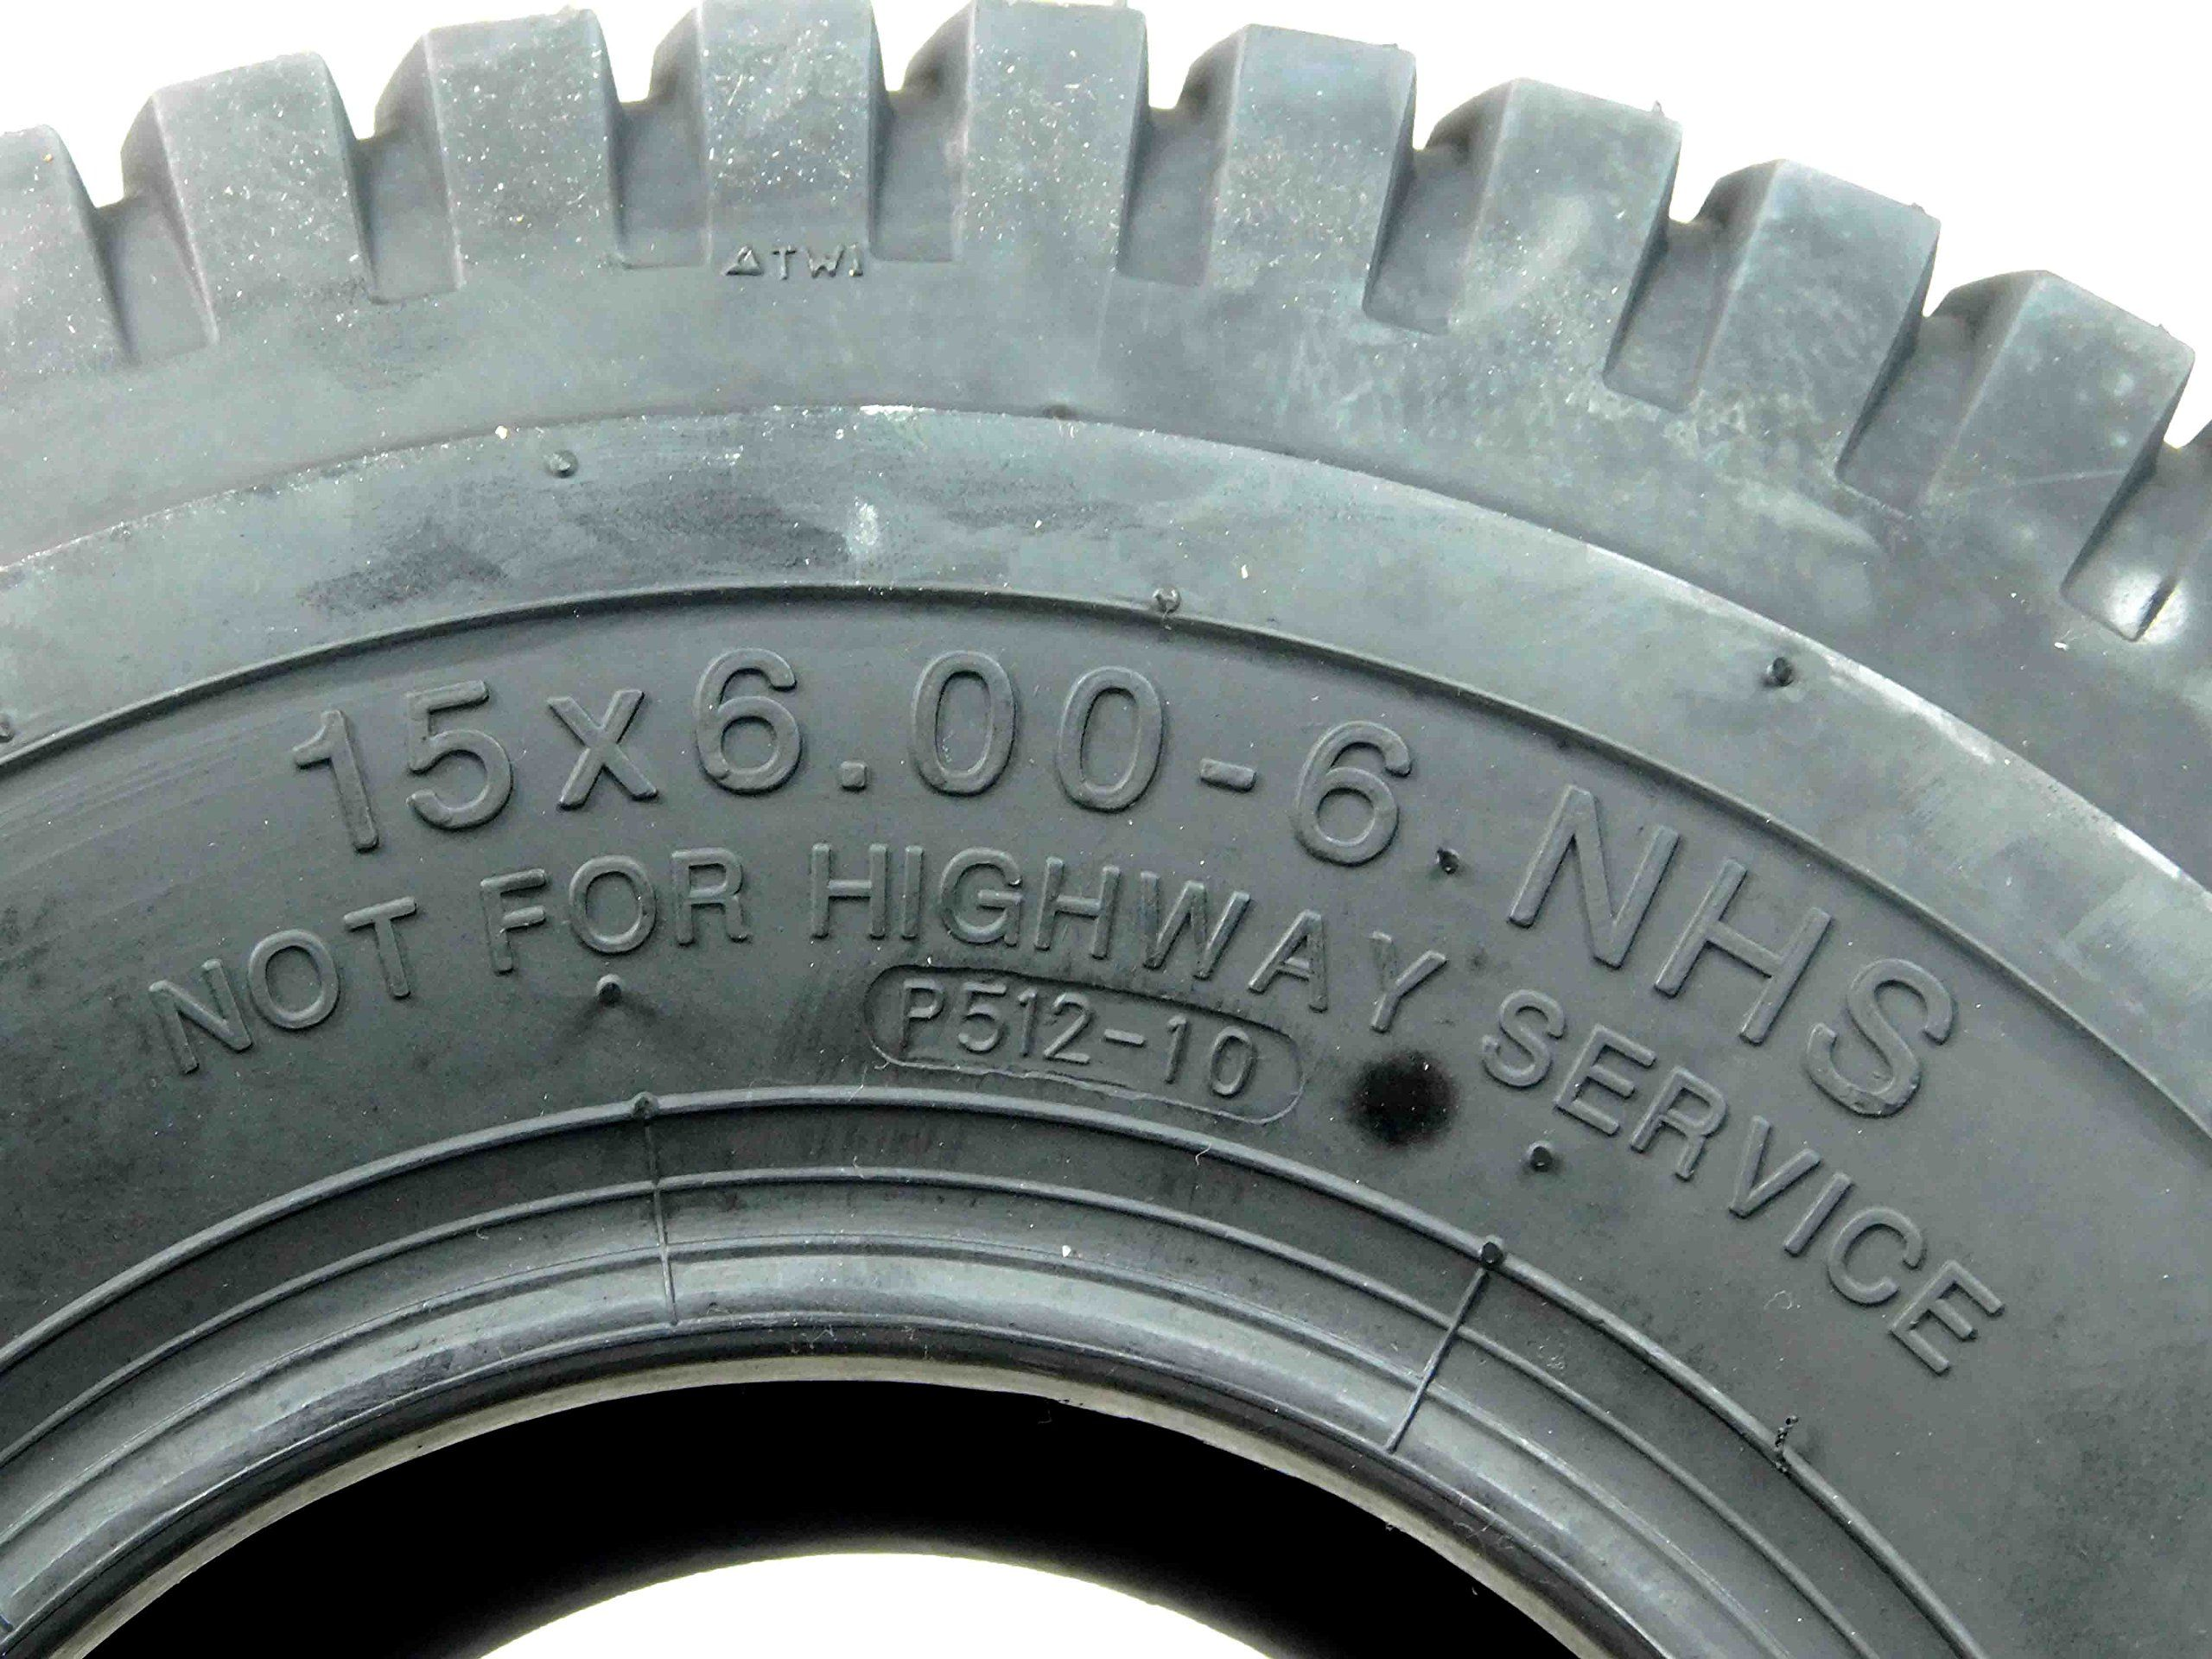 Massfx Lawn And Garden Mower Tires 15x66 Mo1566 4 Ply 6mm Tread 2 Tire Set Details Could Be Discovered By Click Lawn Mower Tires Lawn And Garden Lawn Mower